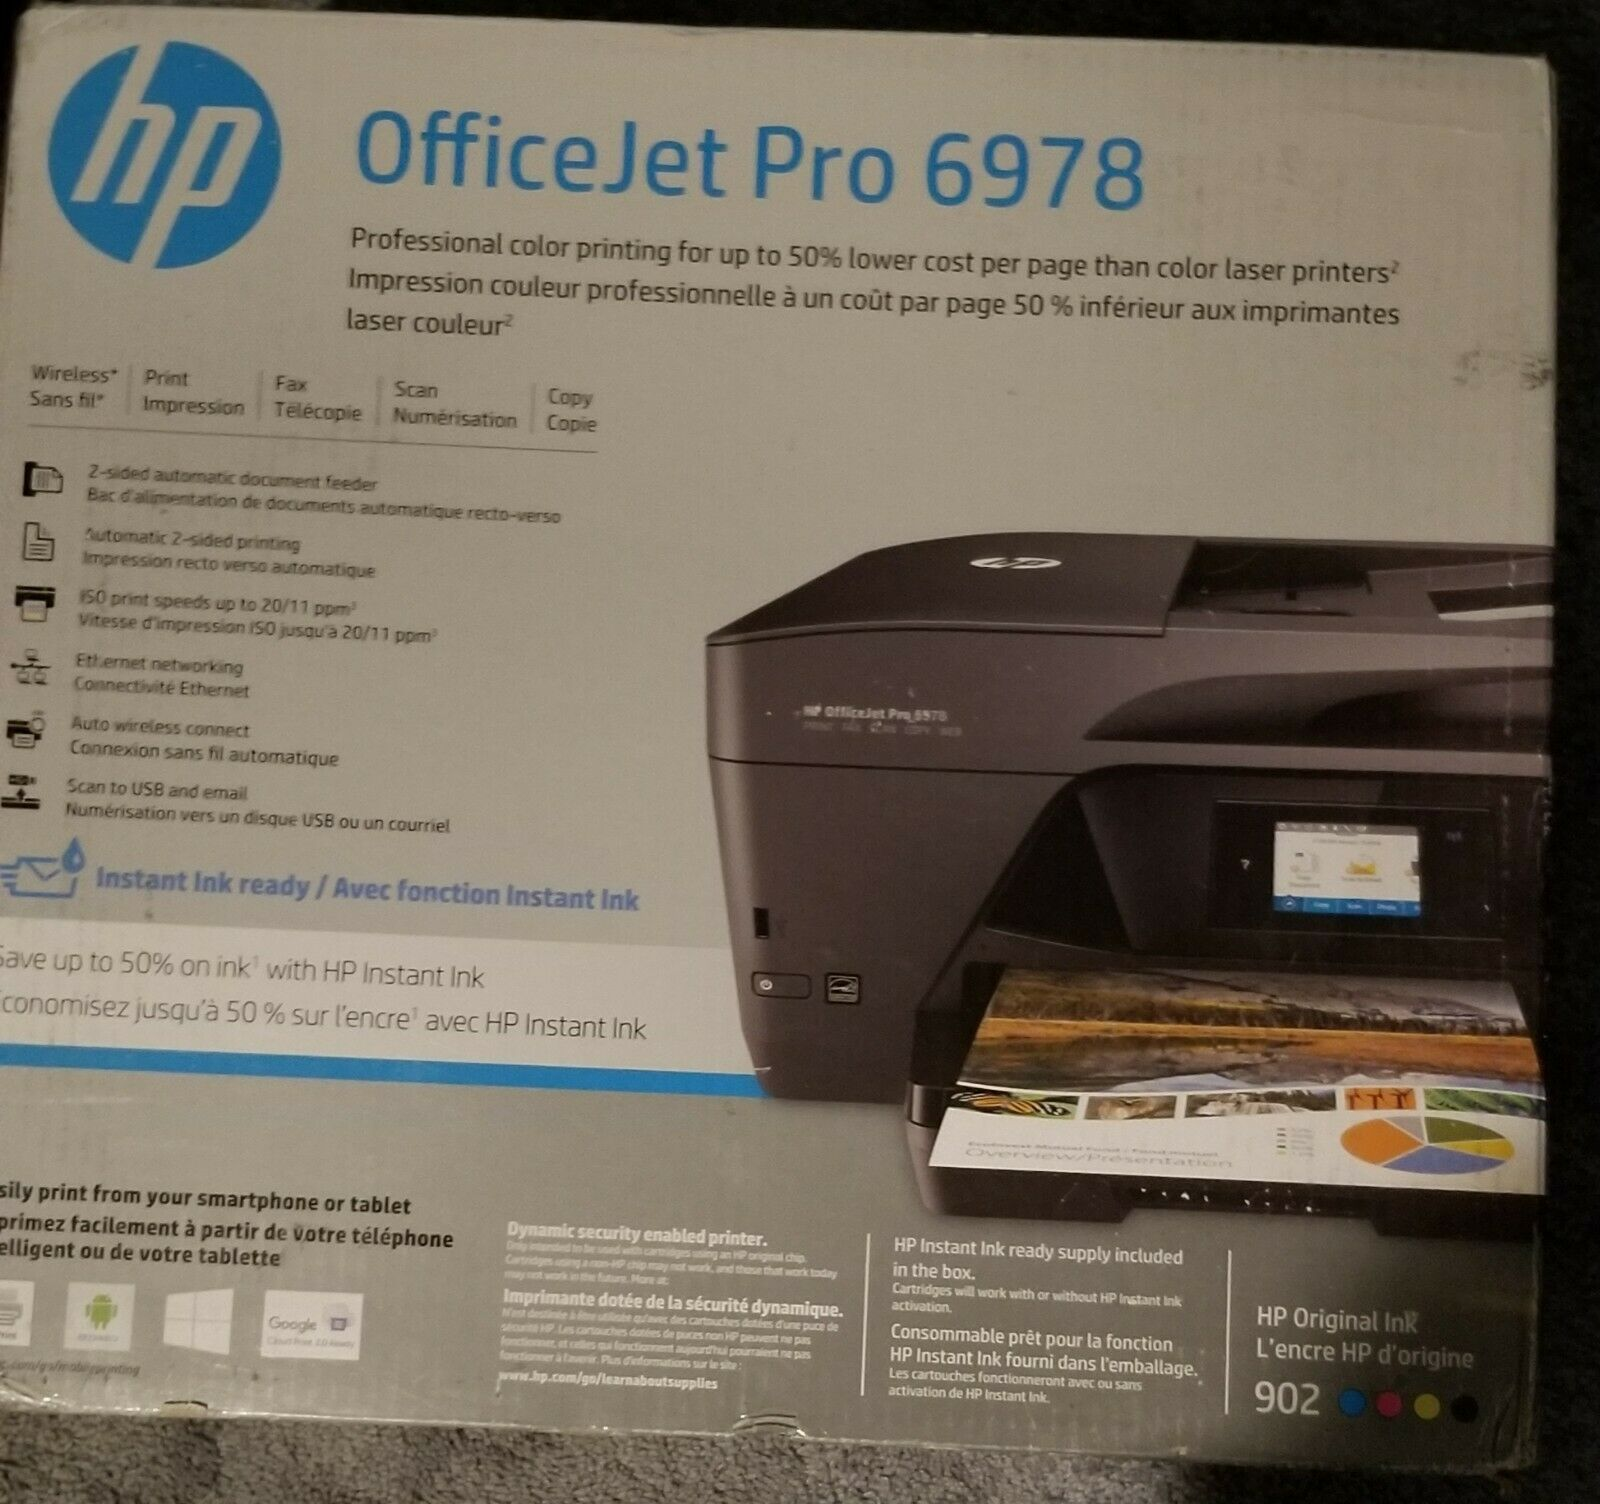 HP OfficeJet Pro 6978 Wireless All-In-One Instant Ink Ready Printer Scanner Fax. Buy it now for 140.00